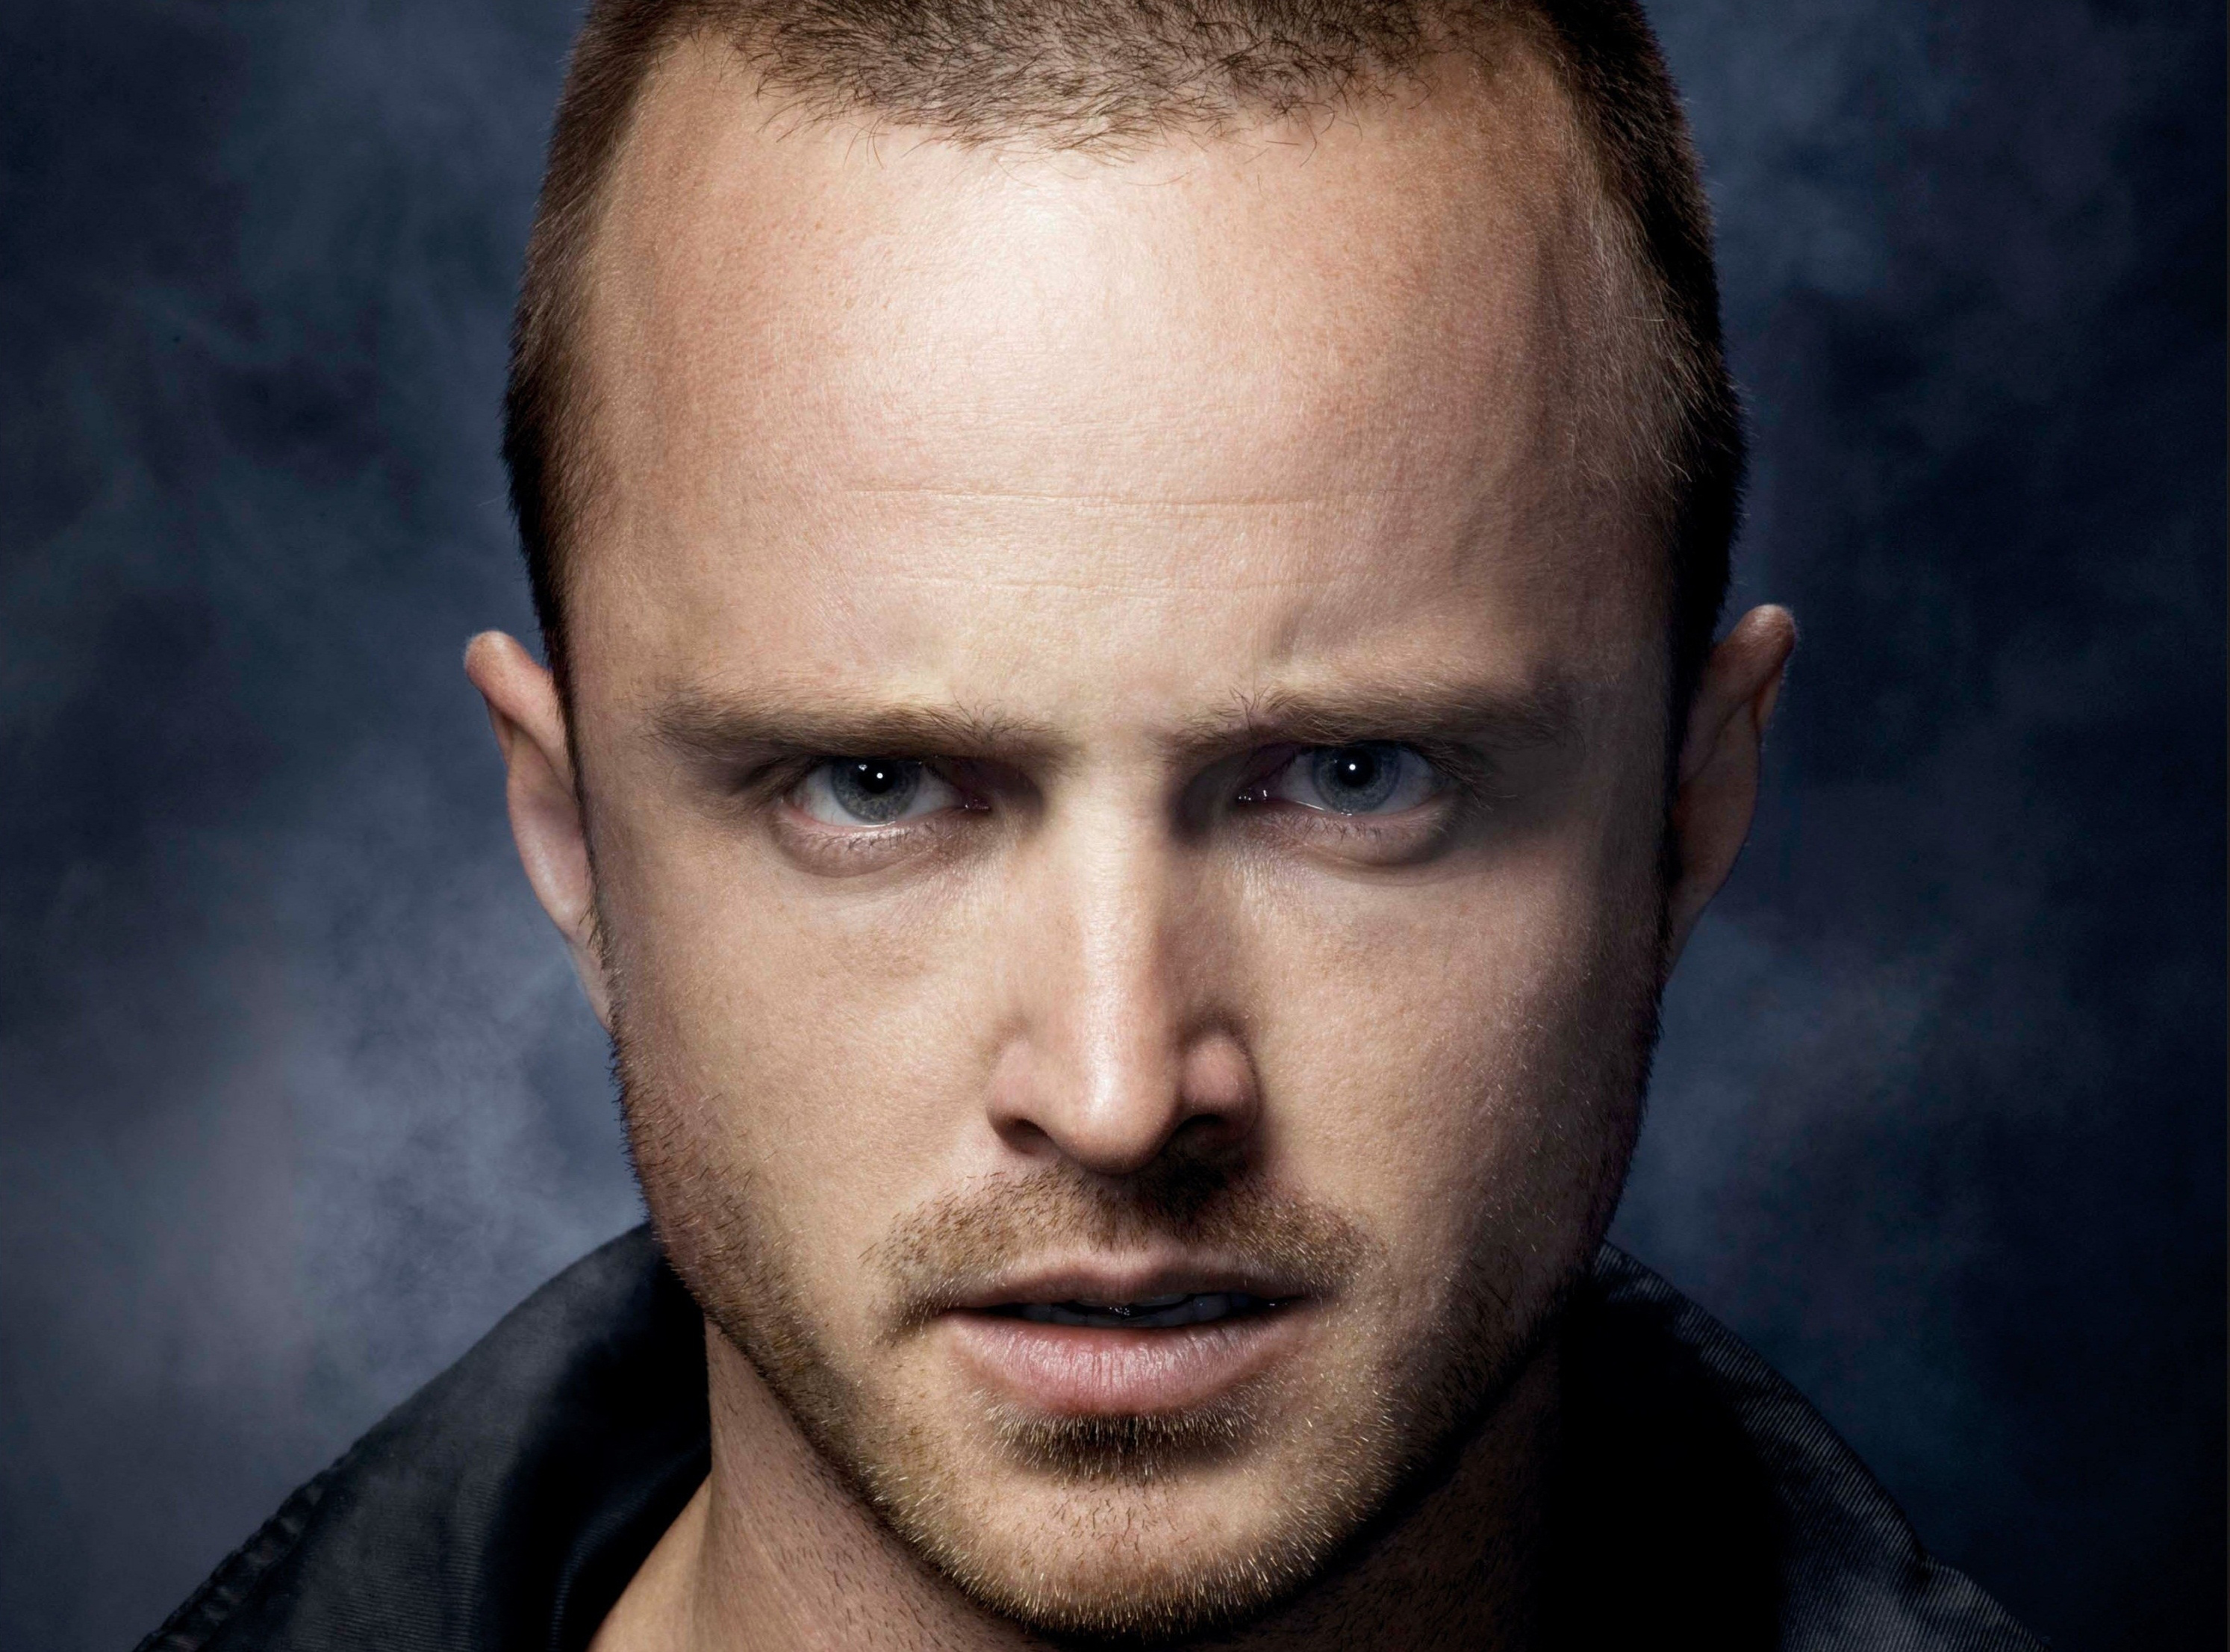 holywood aaron paul photo wallpapers free download